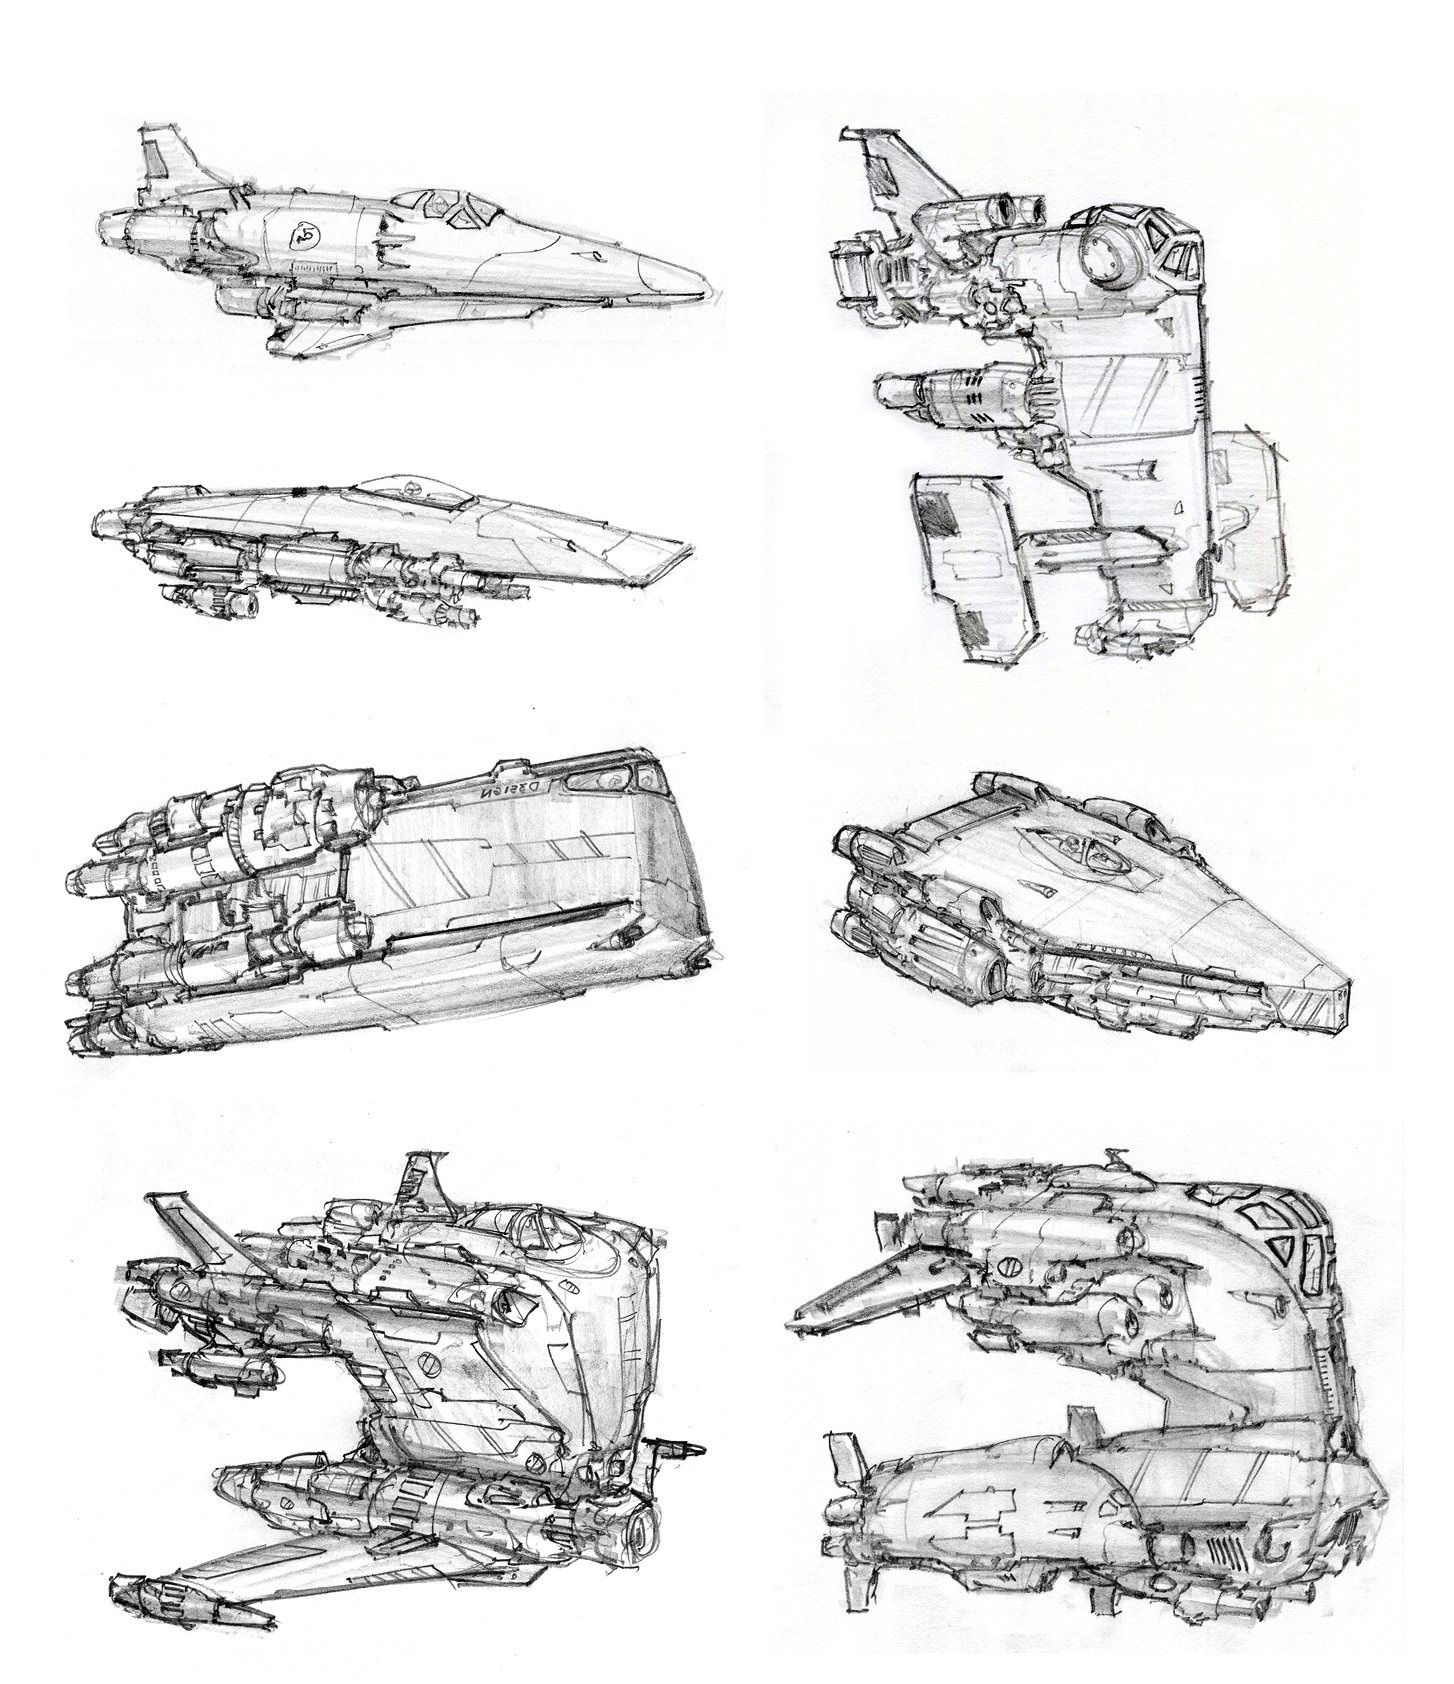 Spaceship Sketches By Alex Villarreal Spaceship Art Sci Fi Concept Art Spaceship Concept